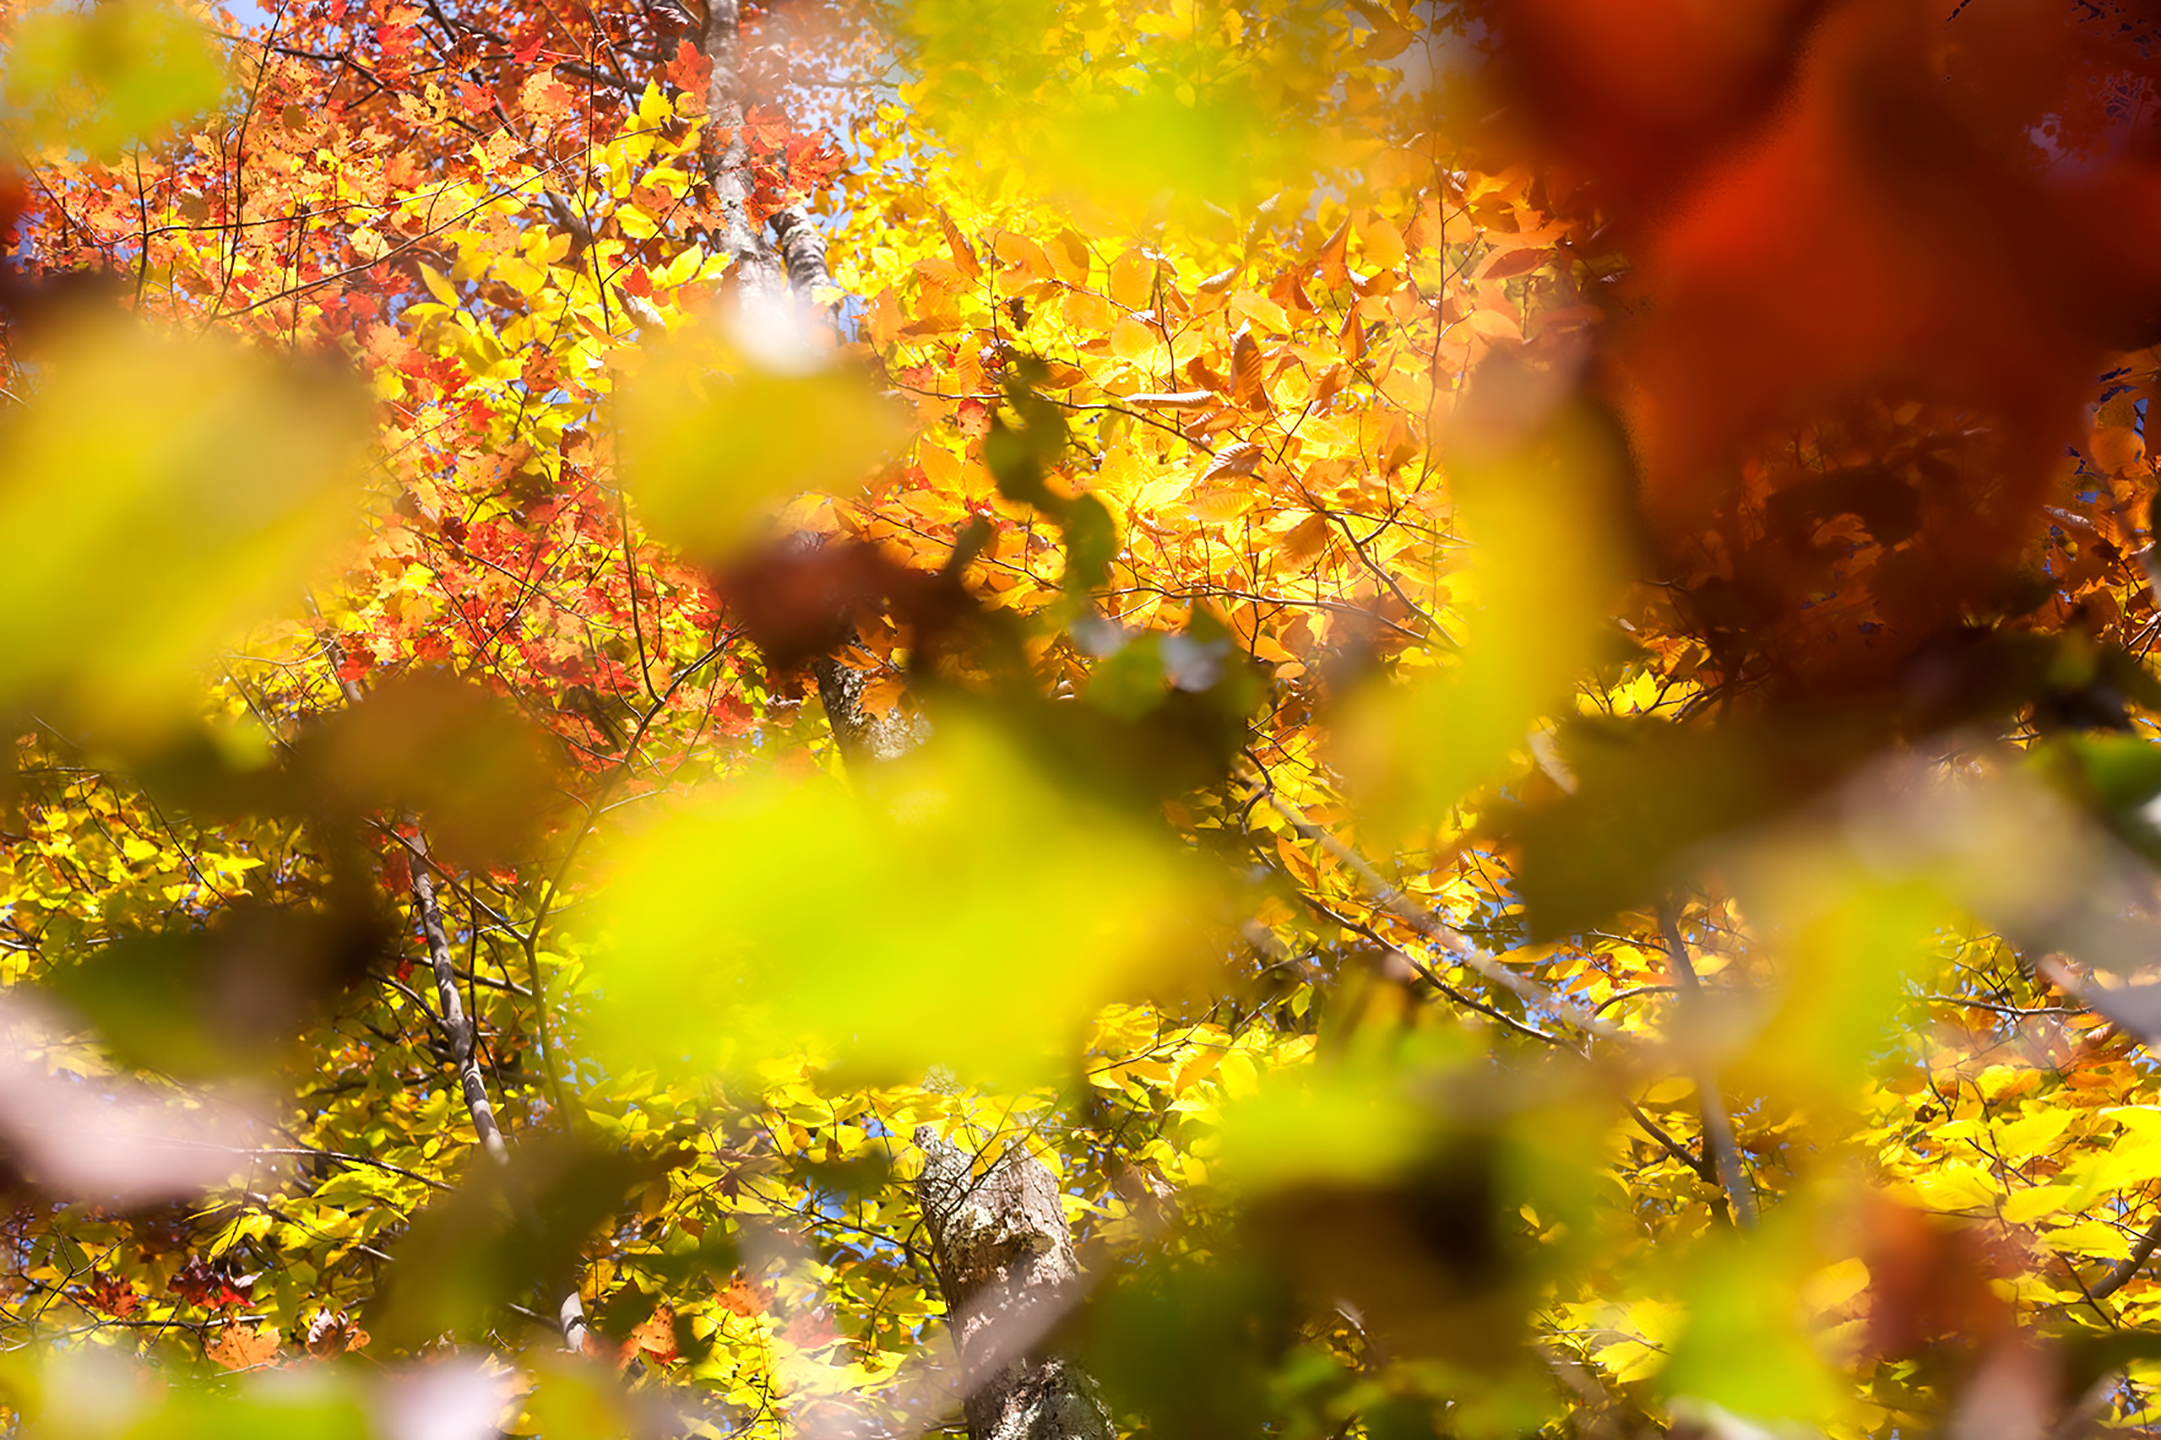 Abstract image looking through the woods on a fall day.